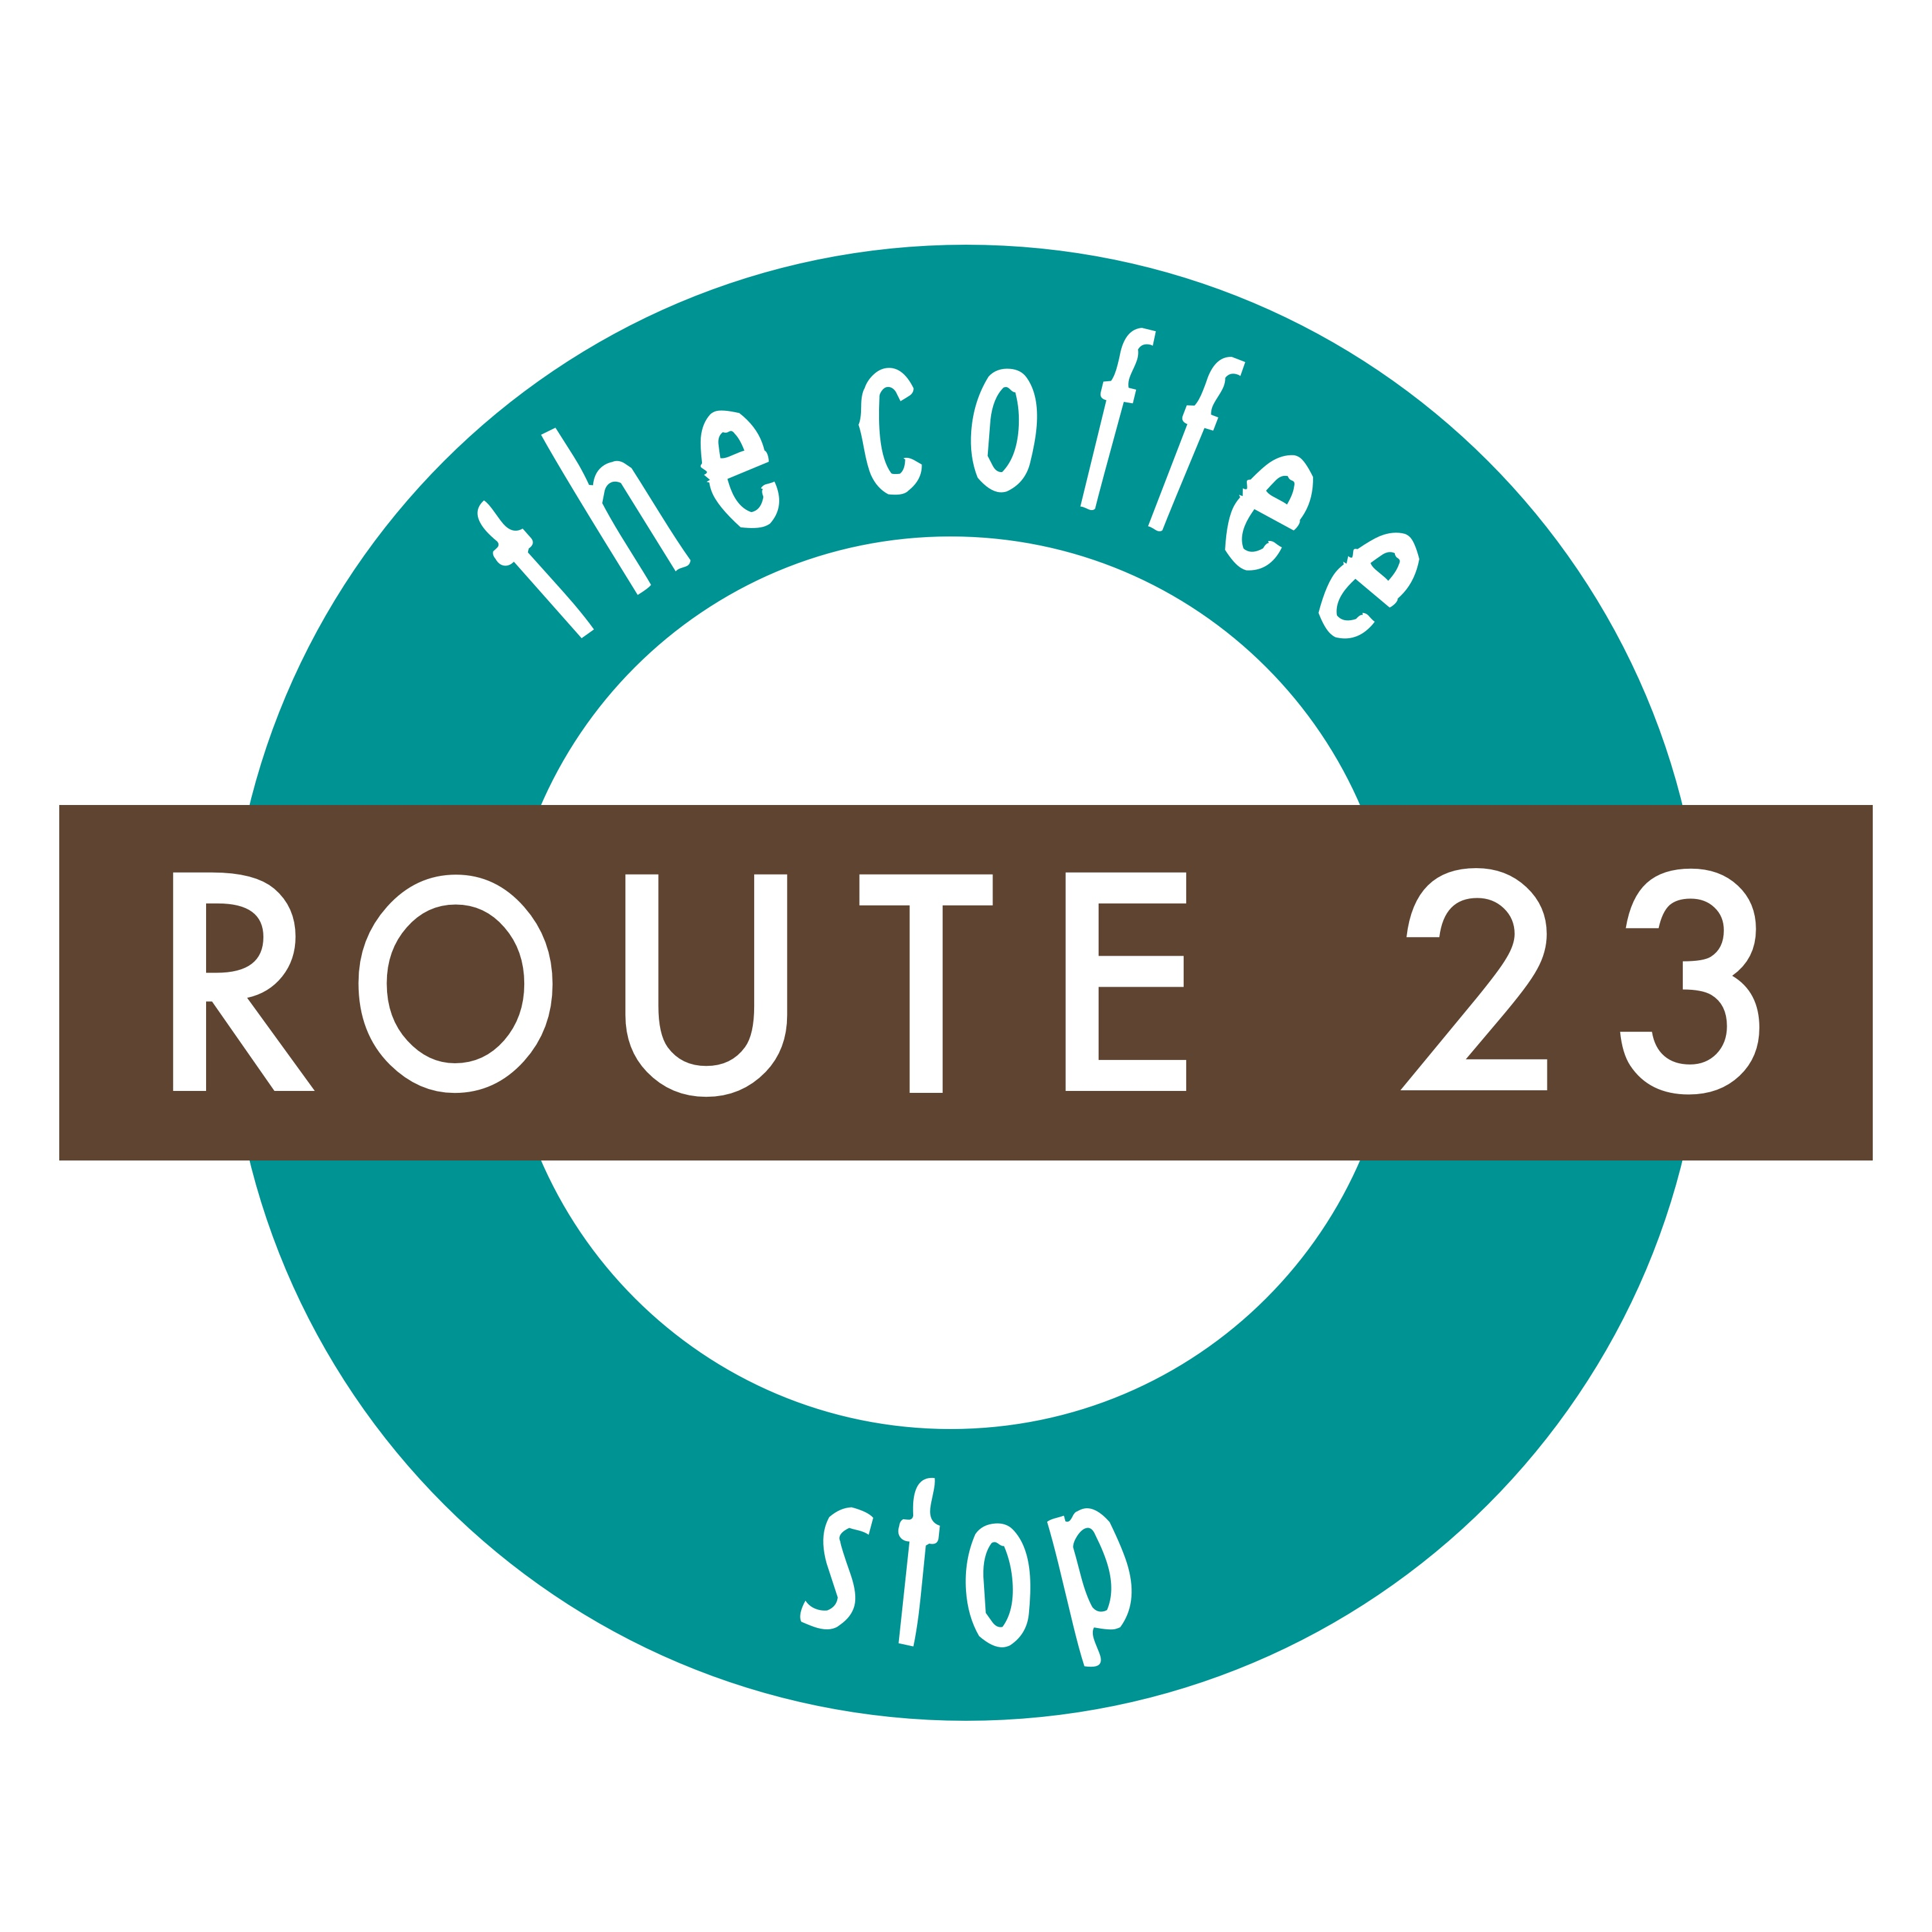 Route 23